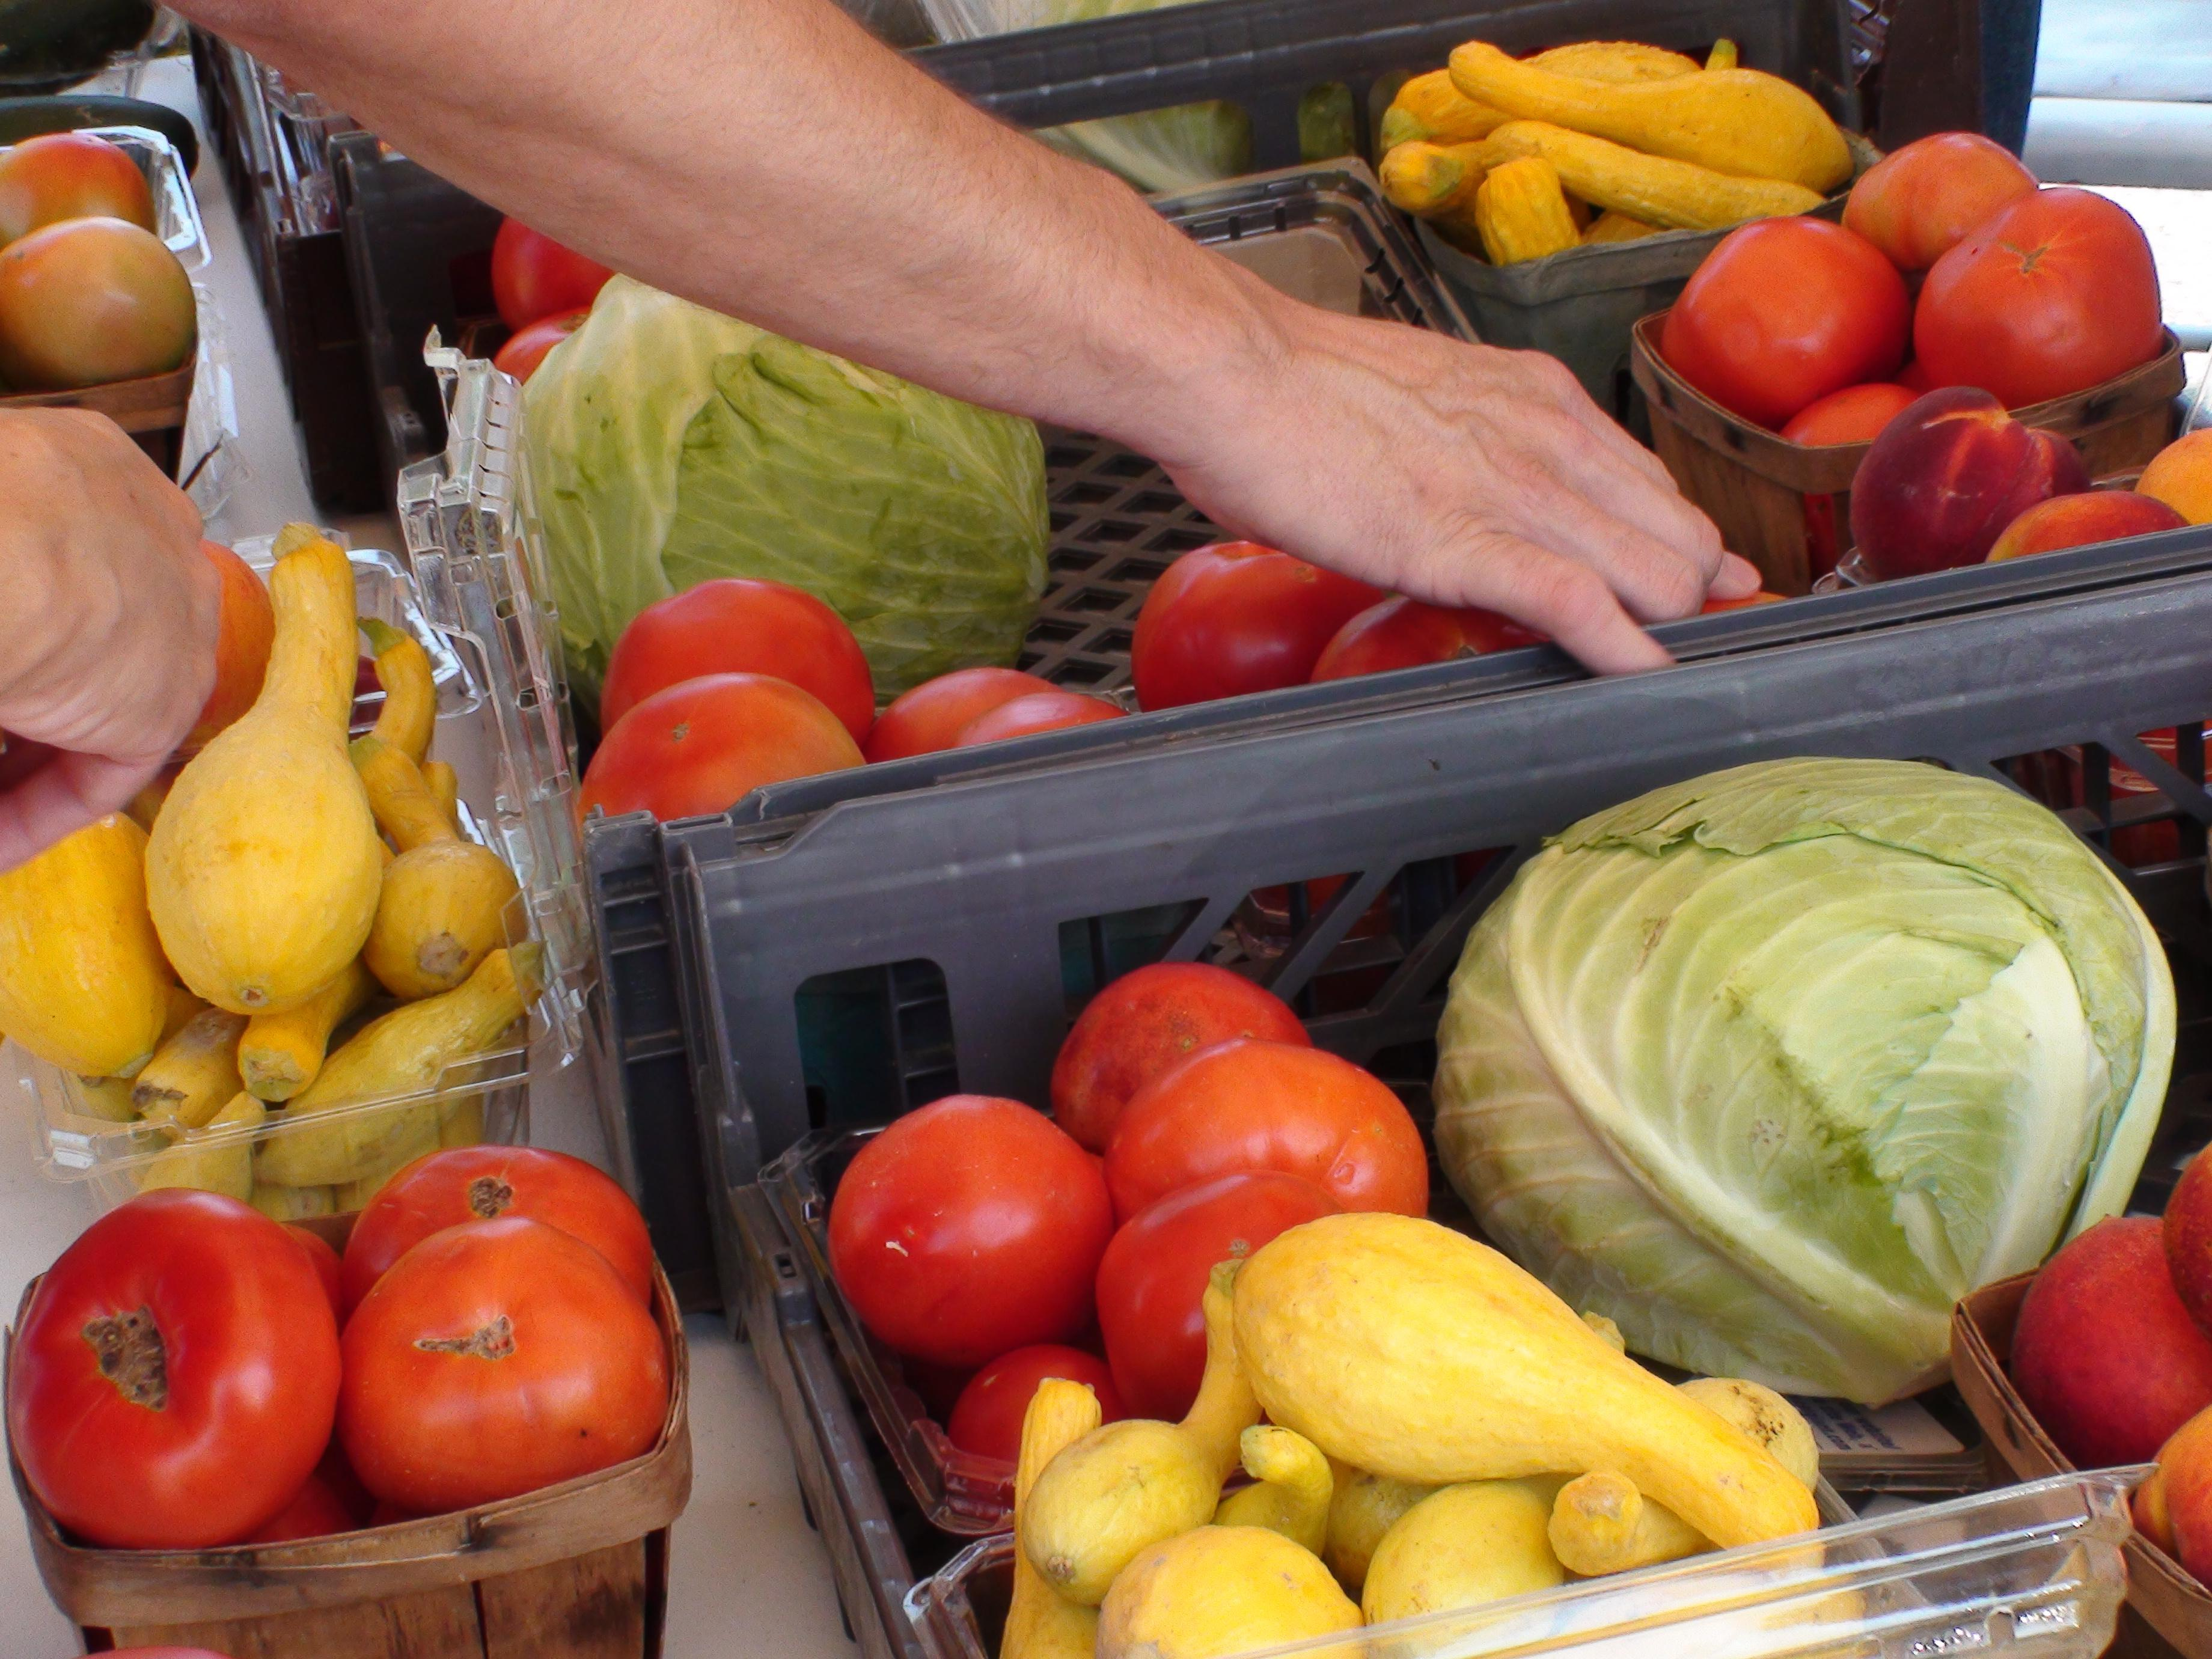 The Burbank Certified Farmers Market offers a variety of fruits and vegetables freshly grown by local farmers.